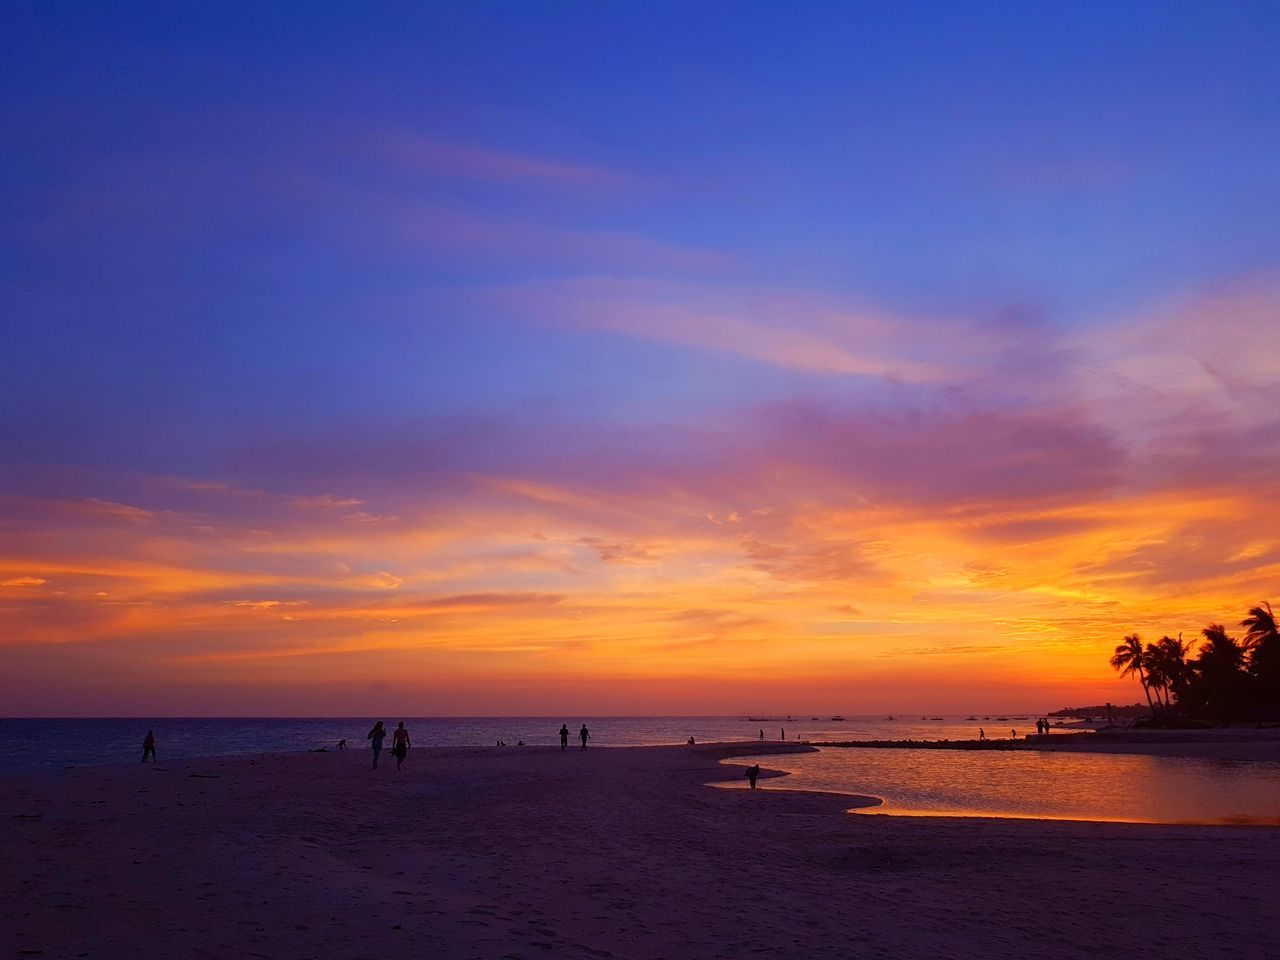 One of Bantayan Island's amazing feature is the wonderful sunset. Beach Beauty In Nature Dusk Holiday Horizon Horizon Over Water Landscape Nature Orange Sky Outdoors Samsung Galaxy S7 Sand Scenics Sea Silhouette Sky Summer Sunset Sunsetbythesea🌅 Tourism Tranquil Scene Tranquility Travel Destinations Vacations Water